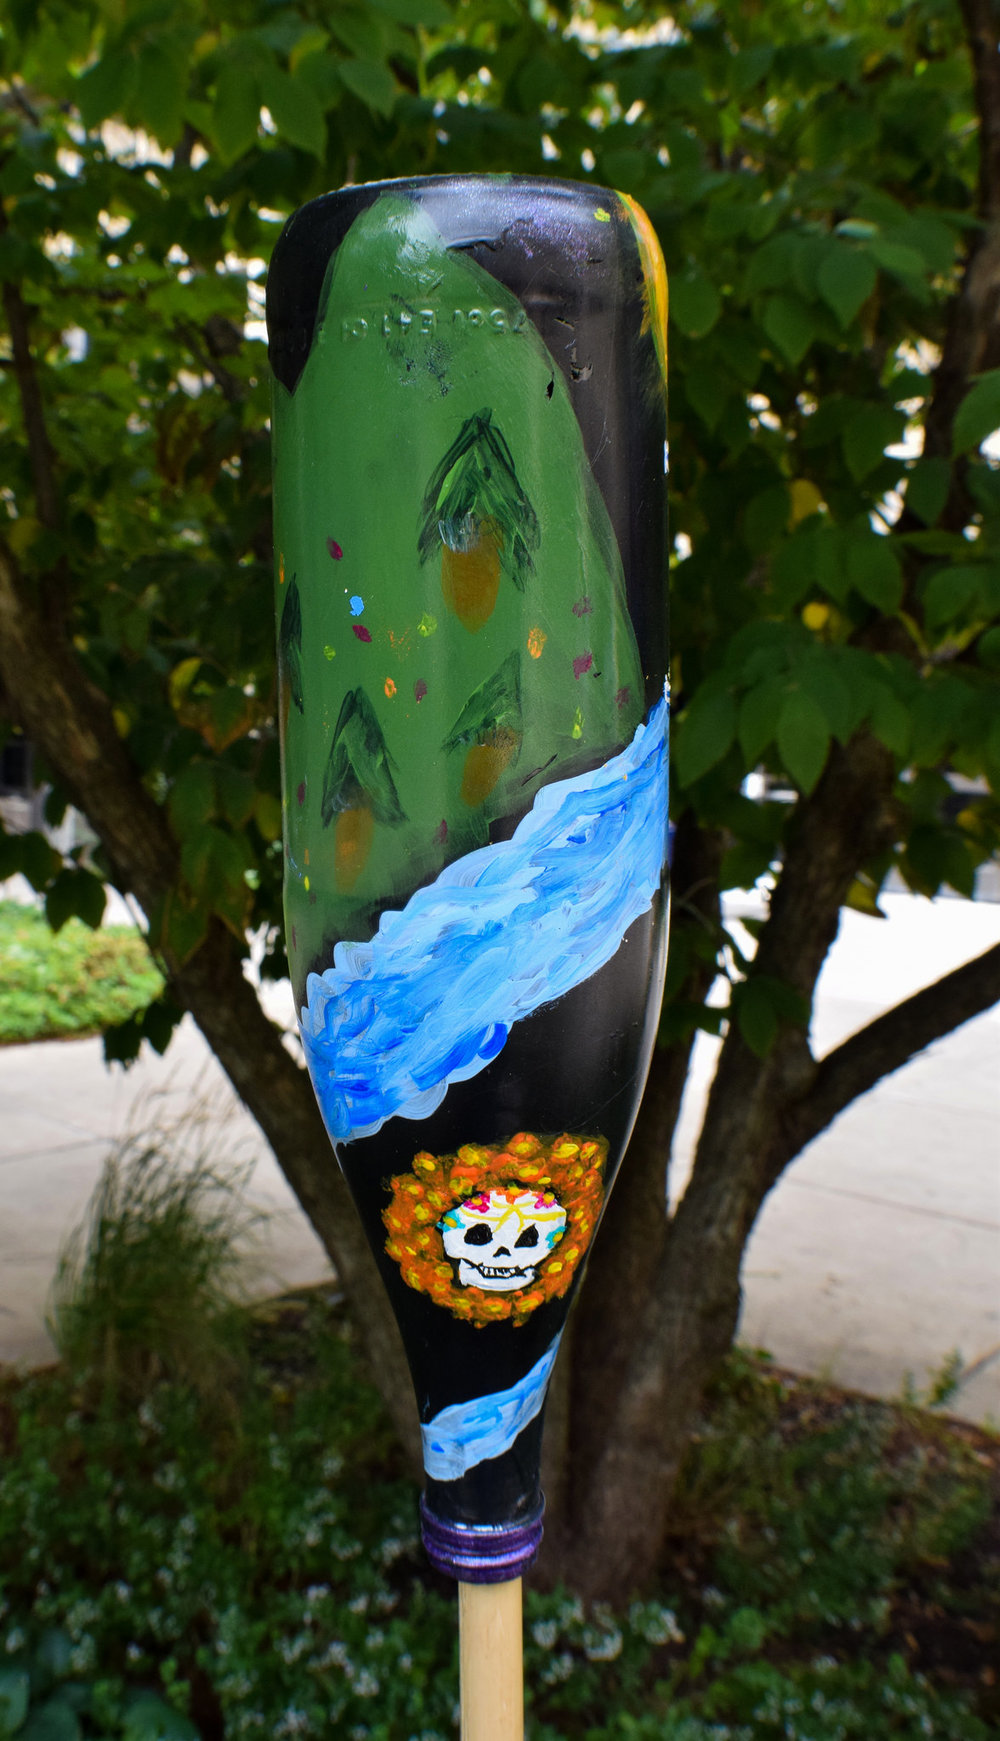 Erick's bottle featuring the river, nature scape, and a day of the dead skull